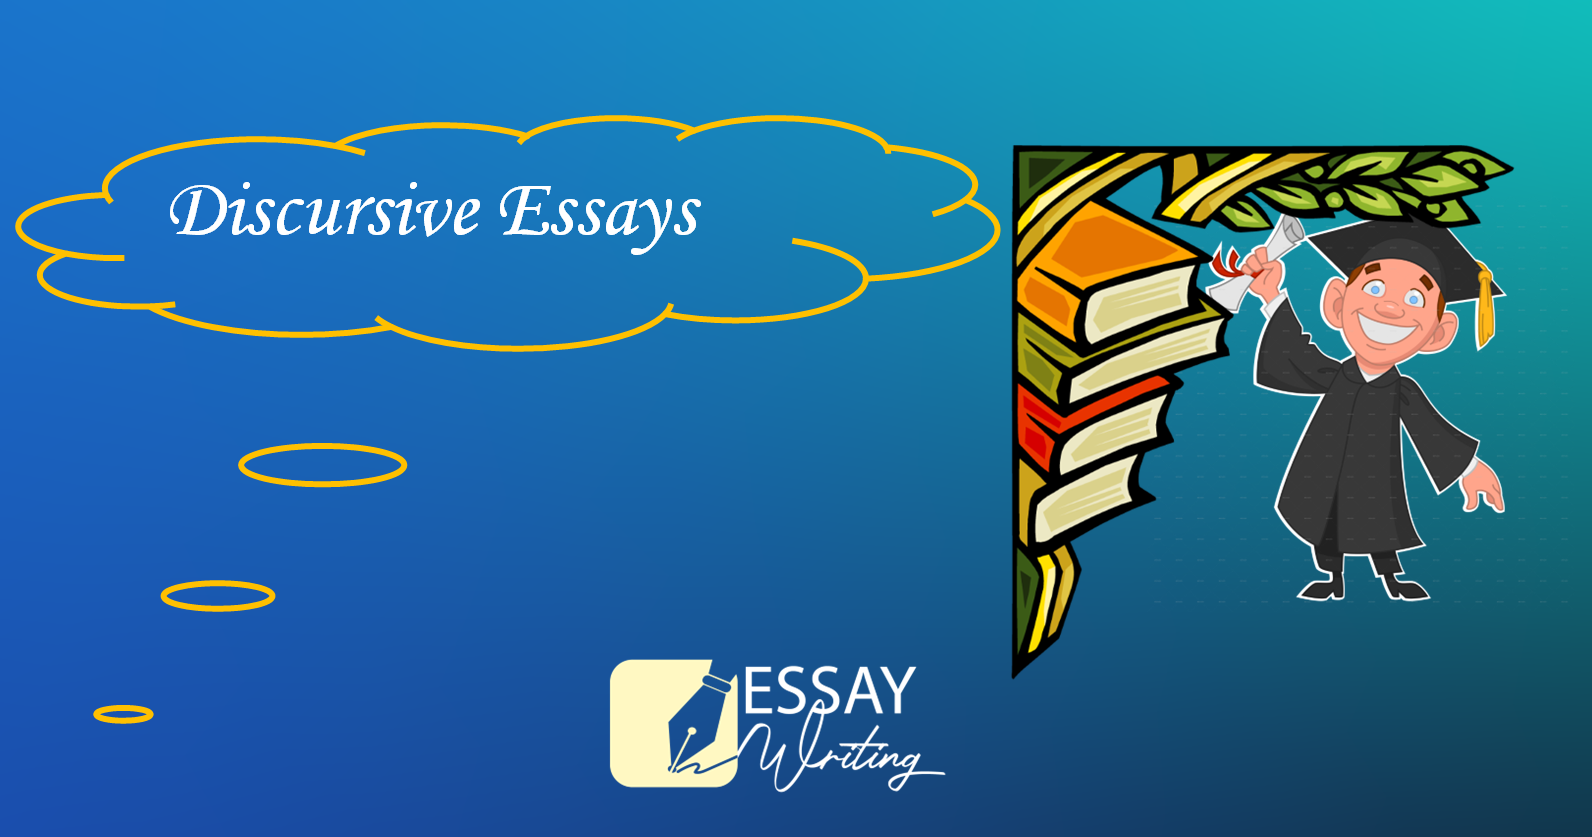 How to Write a Discursive Essay: Structure and Format